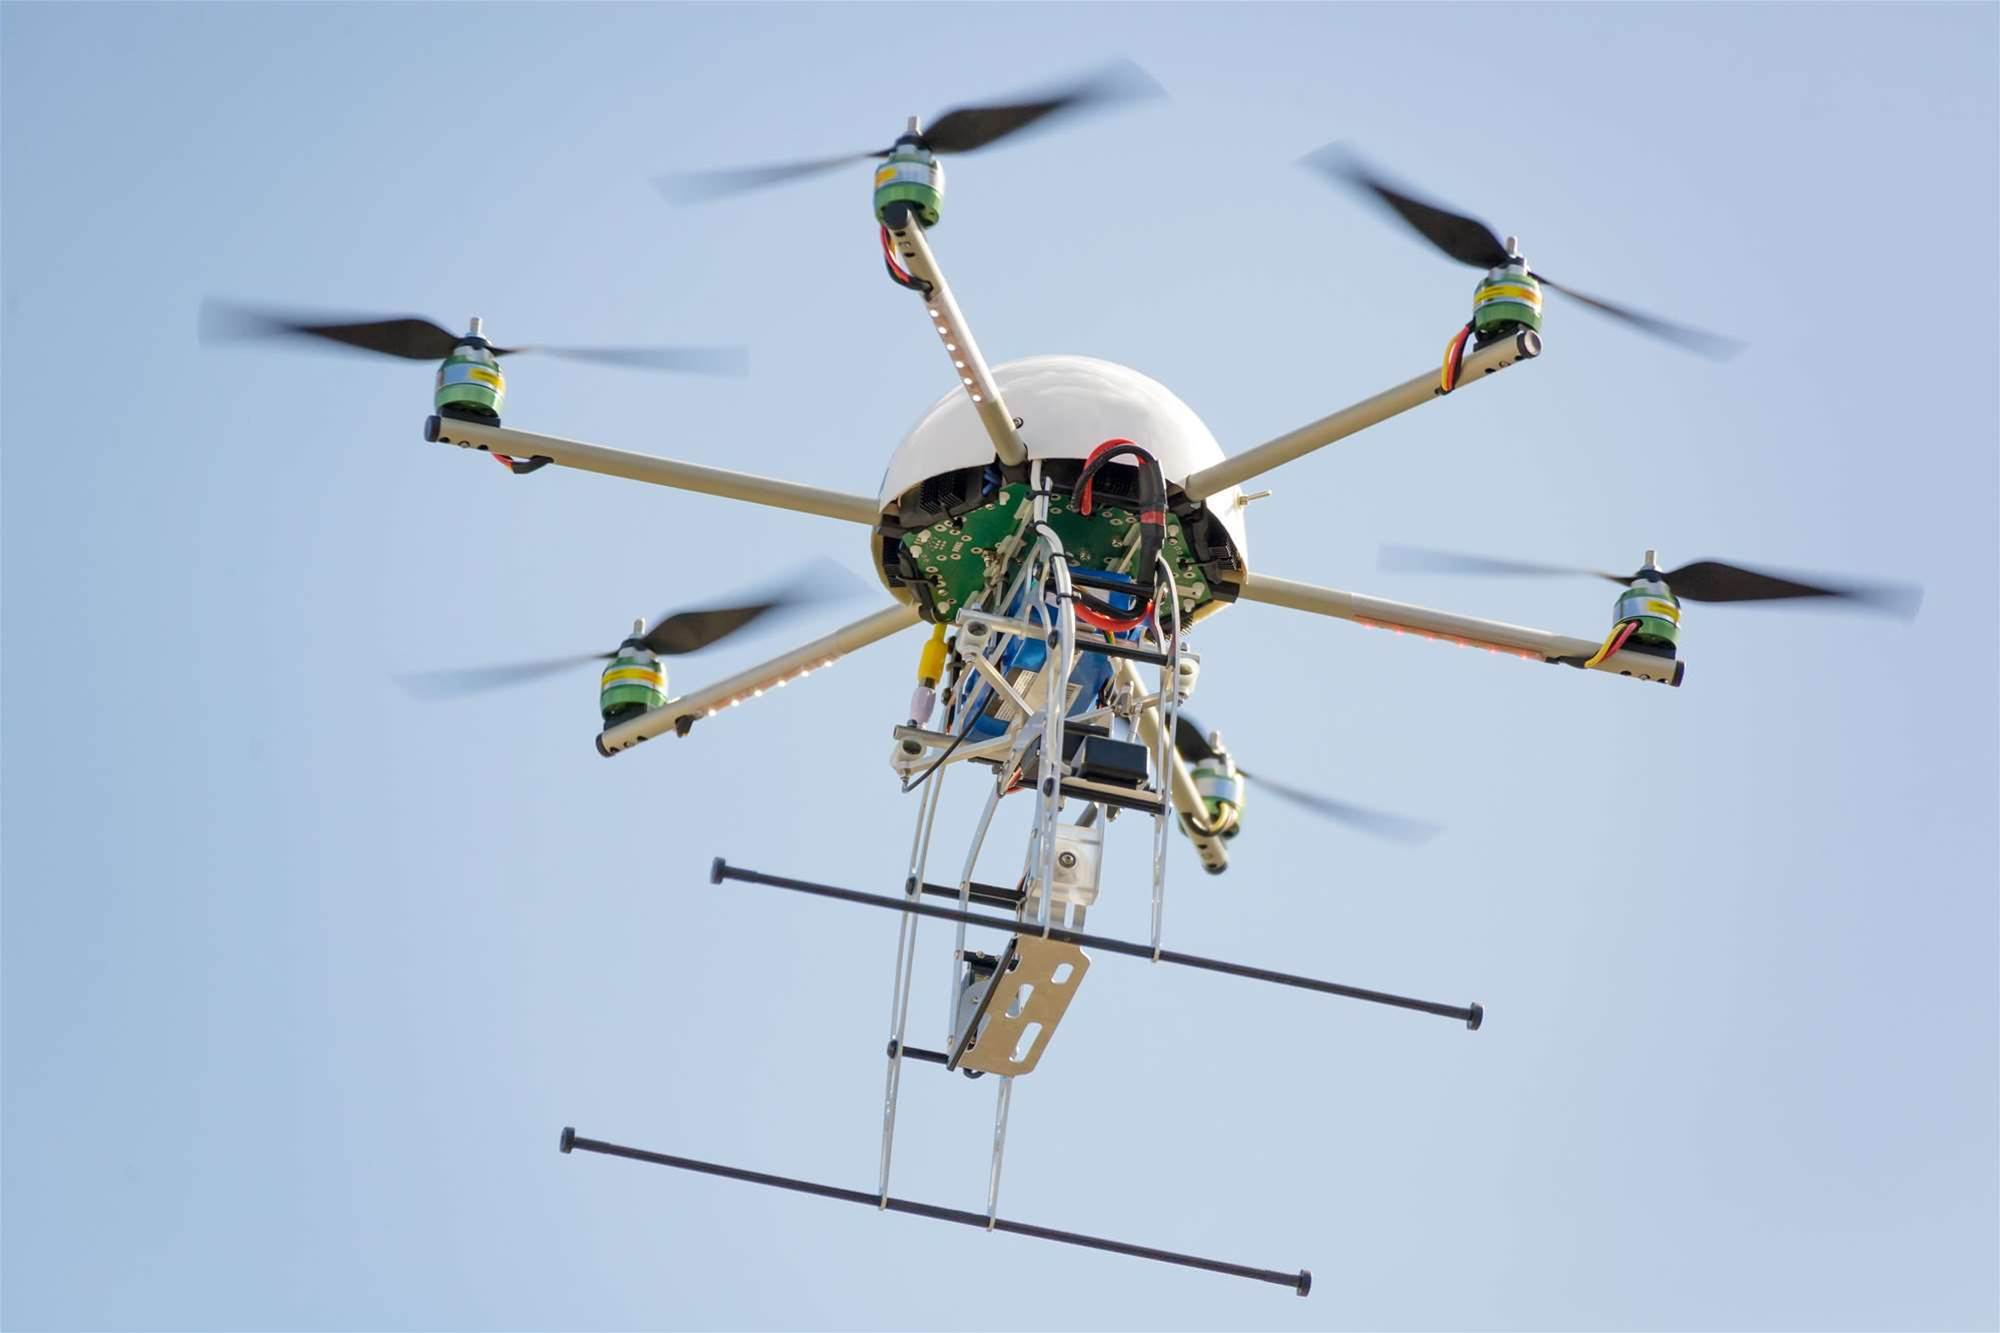 US officials want new powers to disable drones